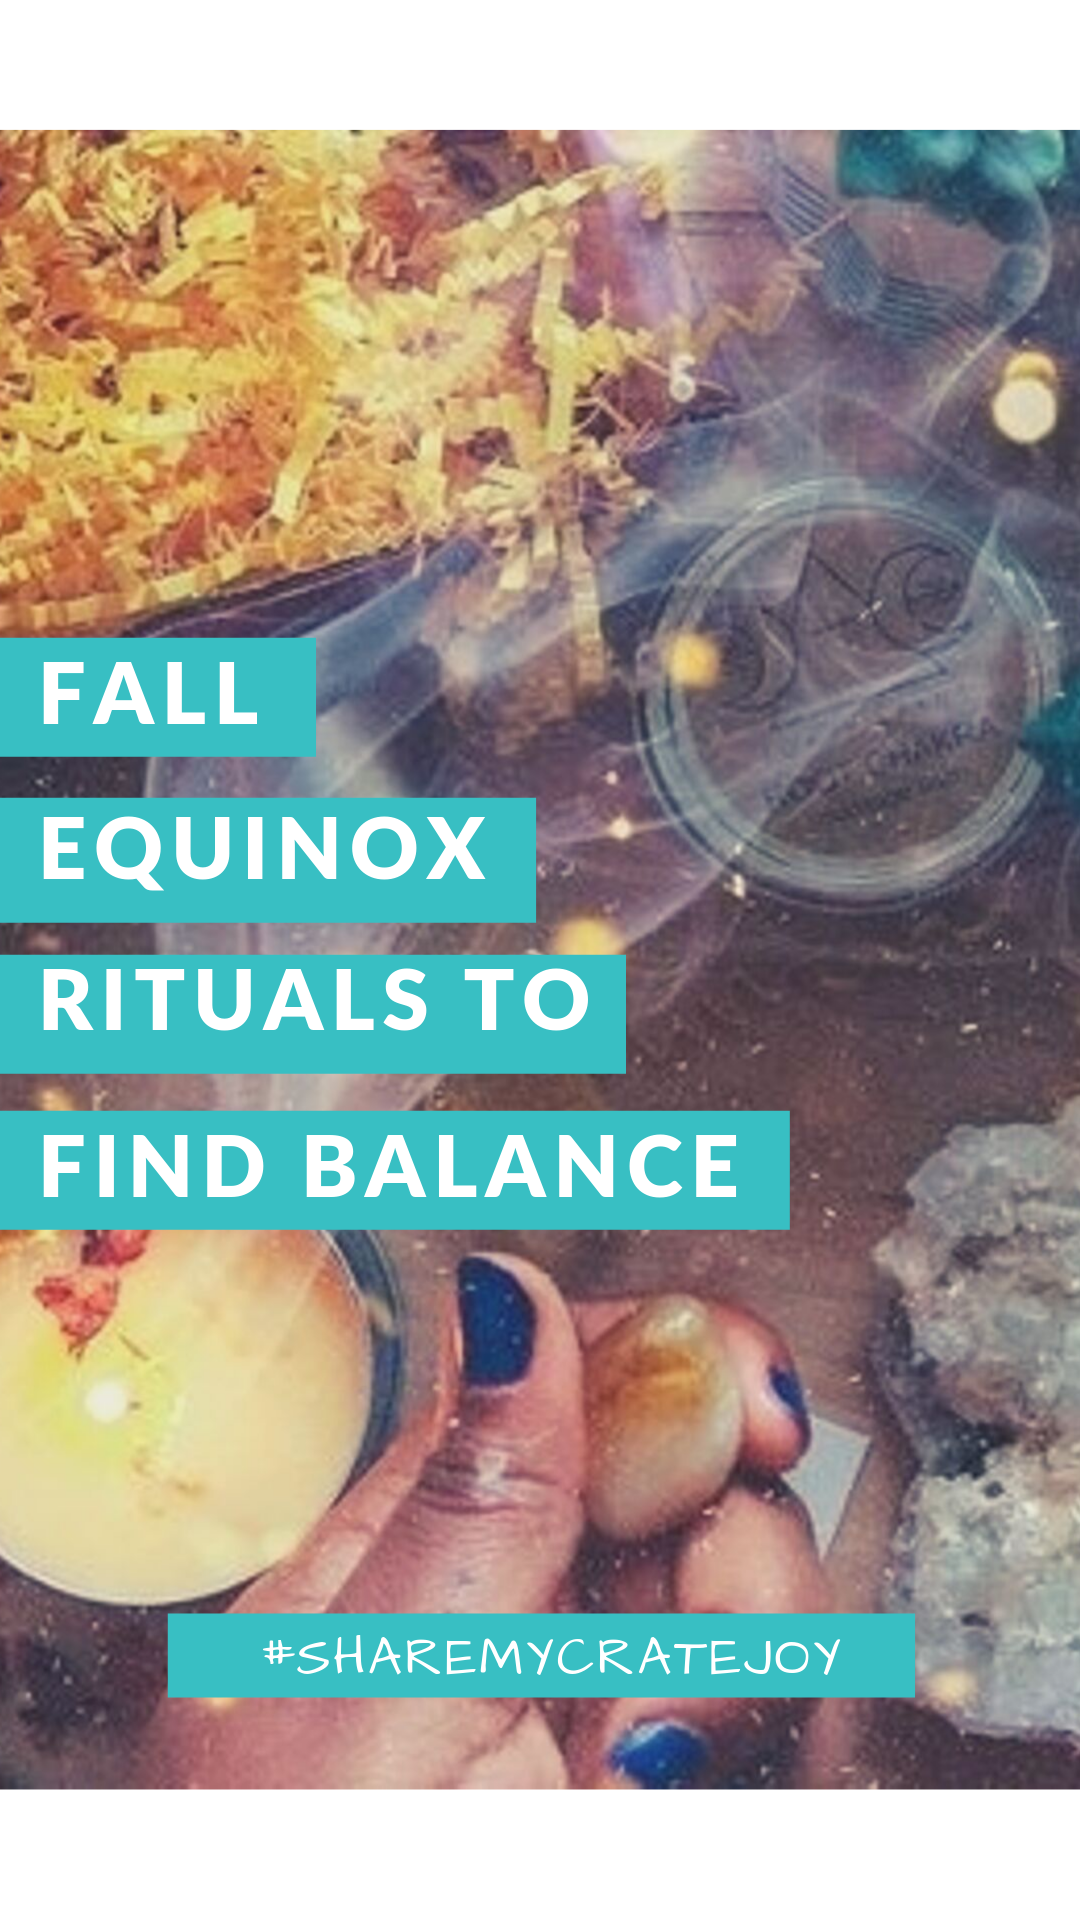 Fall Equinox Rituals for Finding Balance and Renewal New